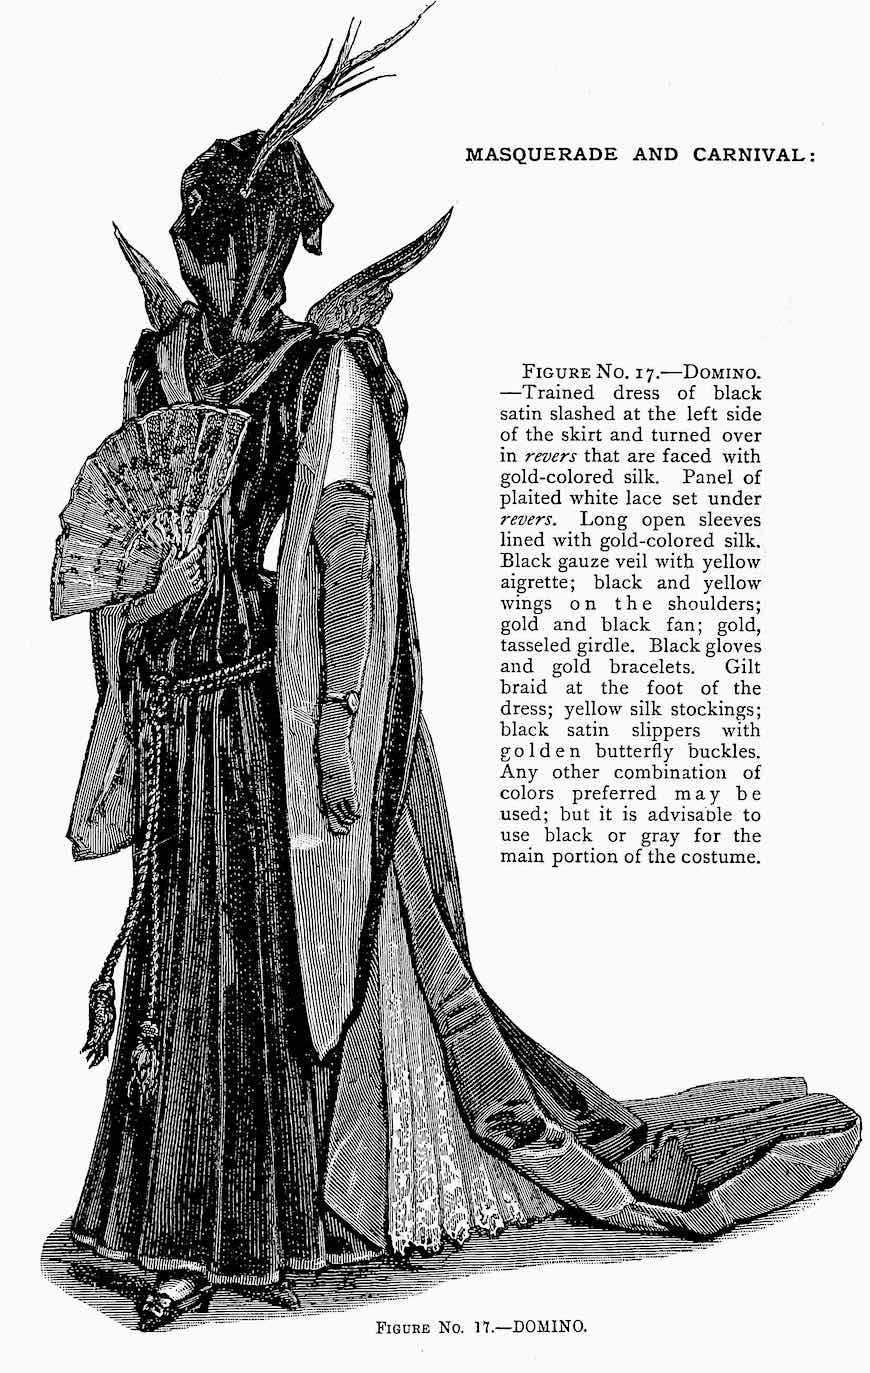 a 1892 masquerade costume called Domino, a hooded and winged woman's costume illustrated, neo Gothic